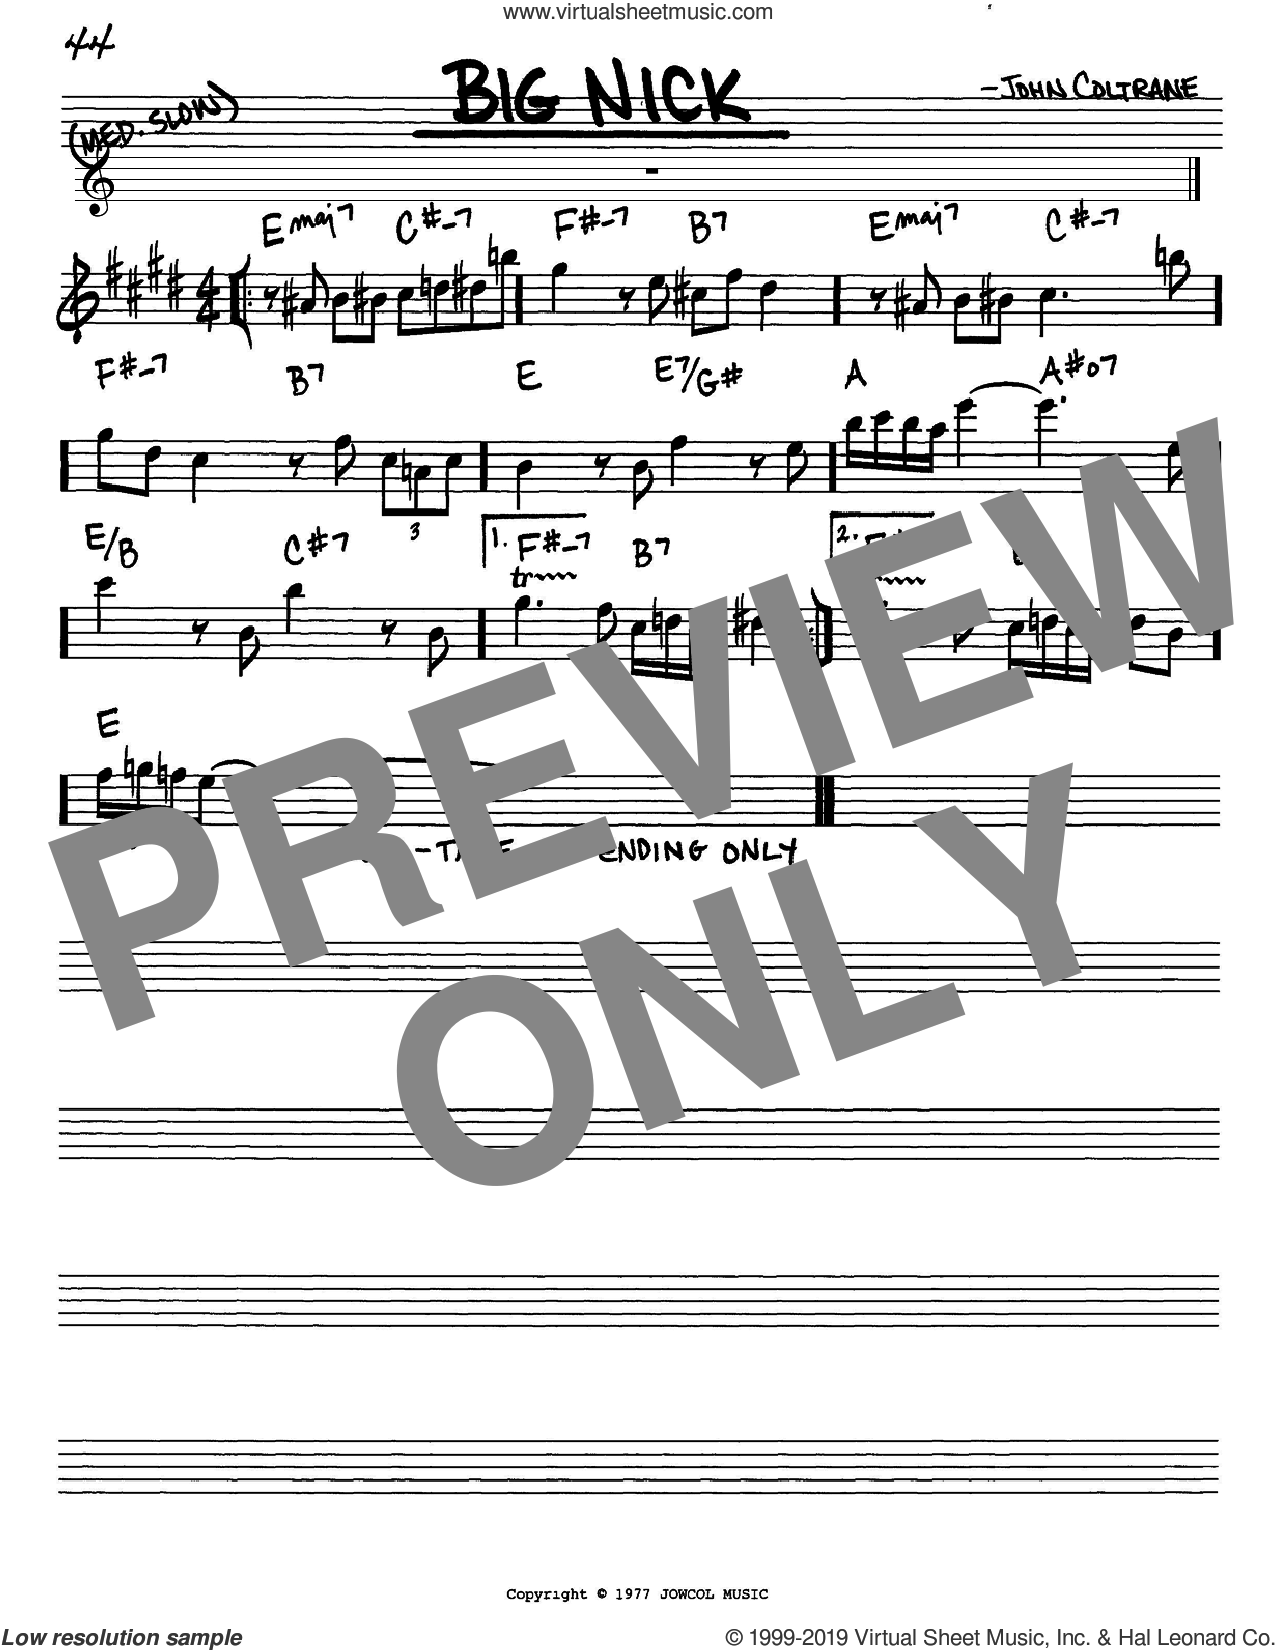 Big Nick sheet music for voice and other instruments (in Eb) by John Coltrane, intermediate skill level